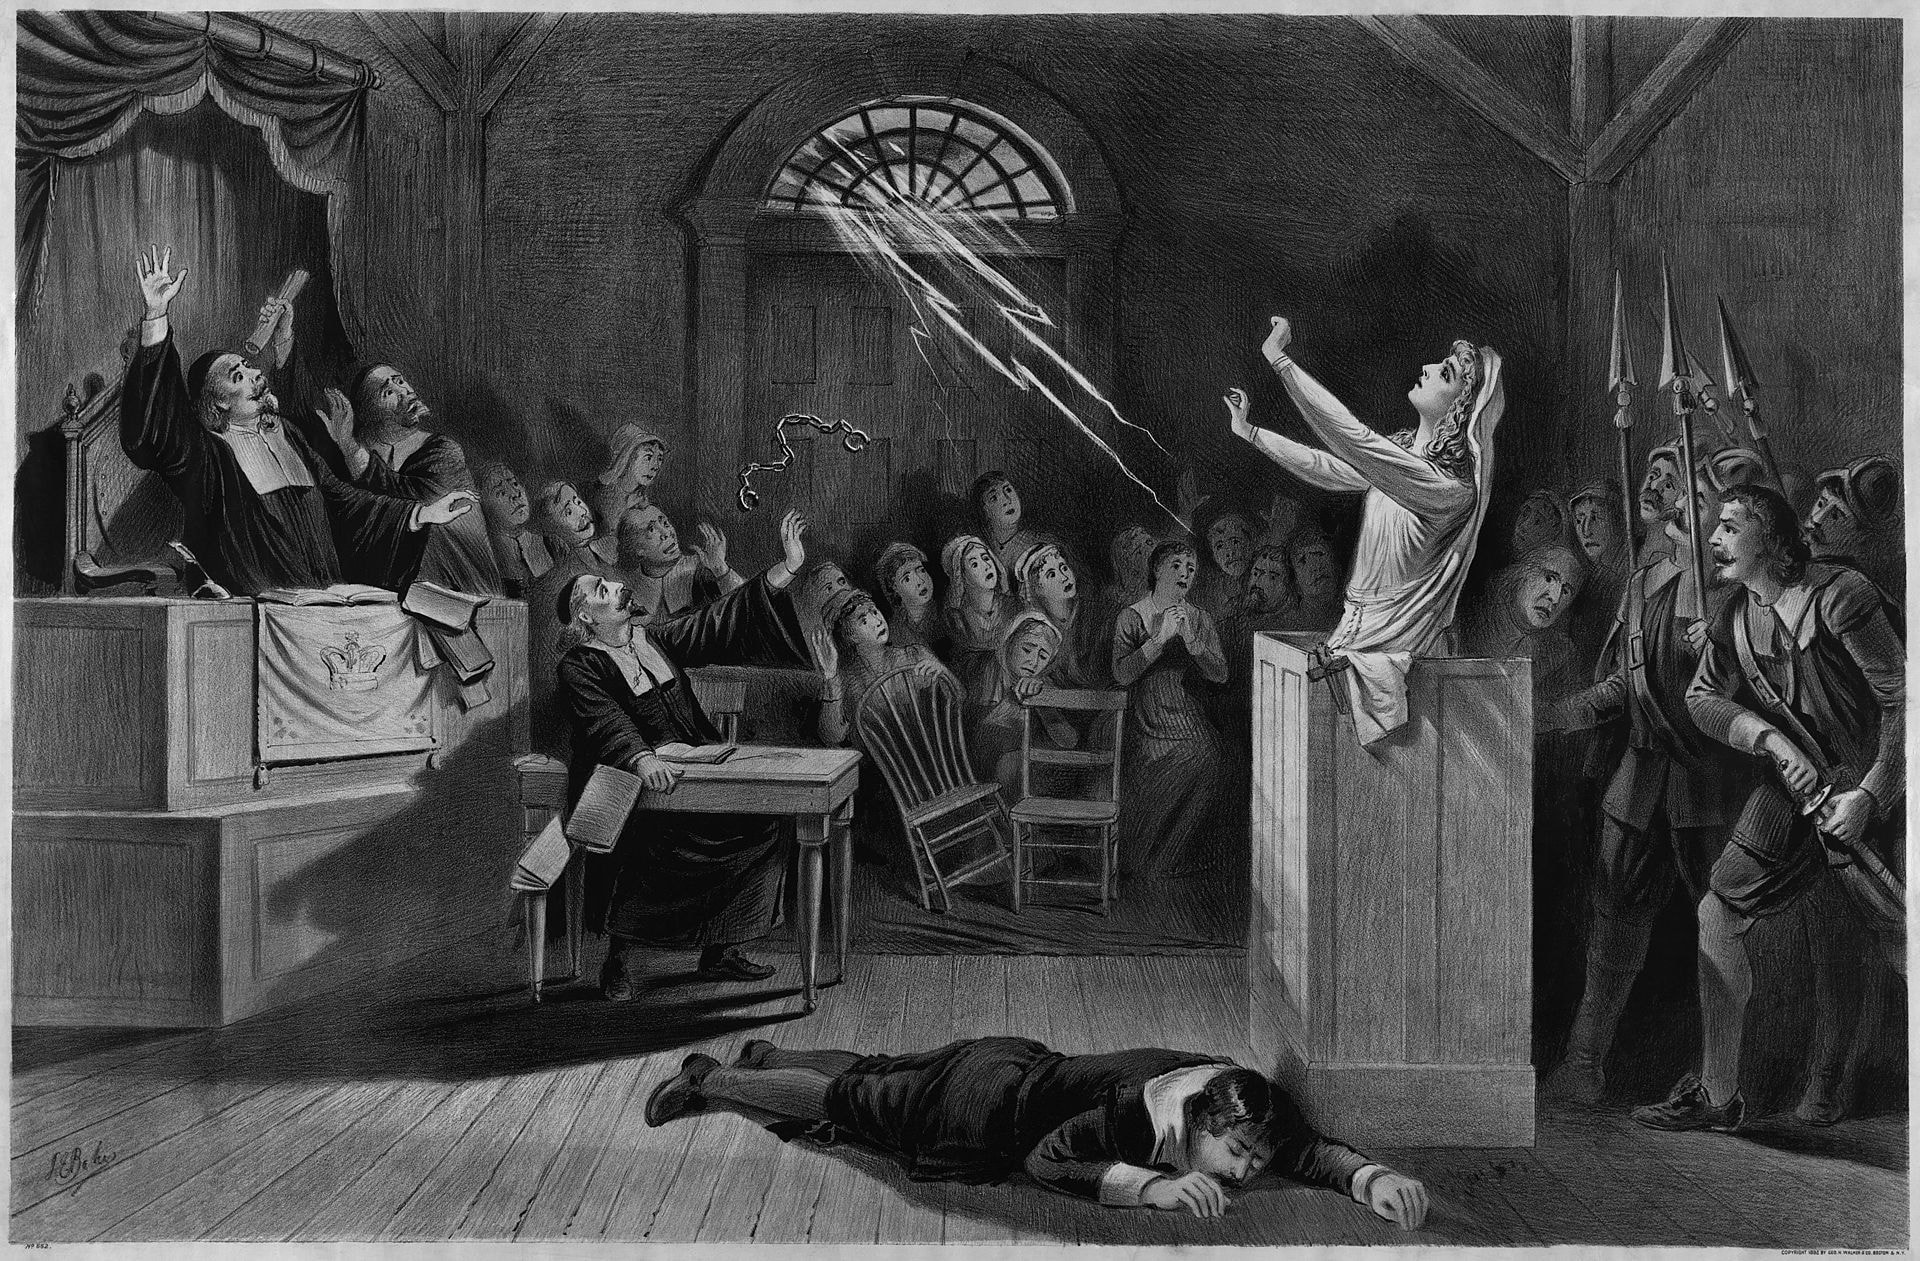 black and white painting of a woman on trial for being a witch